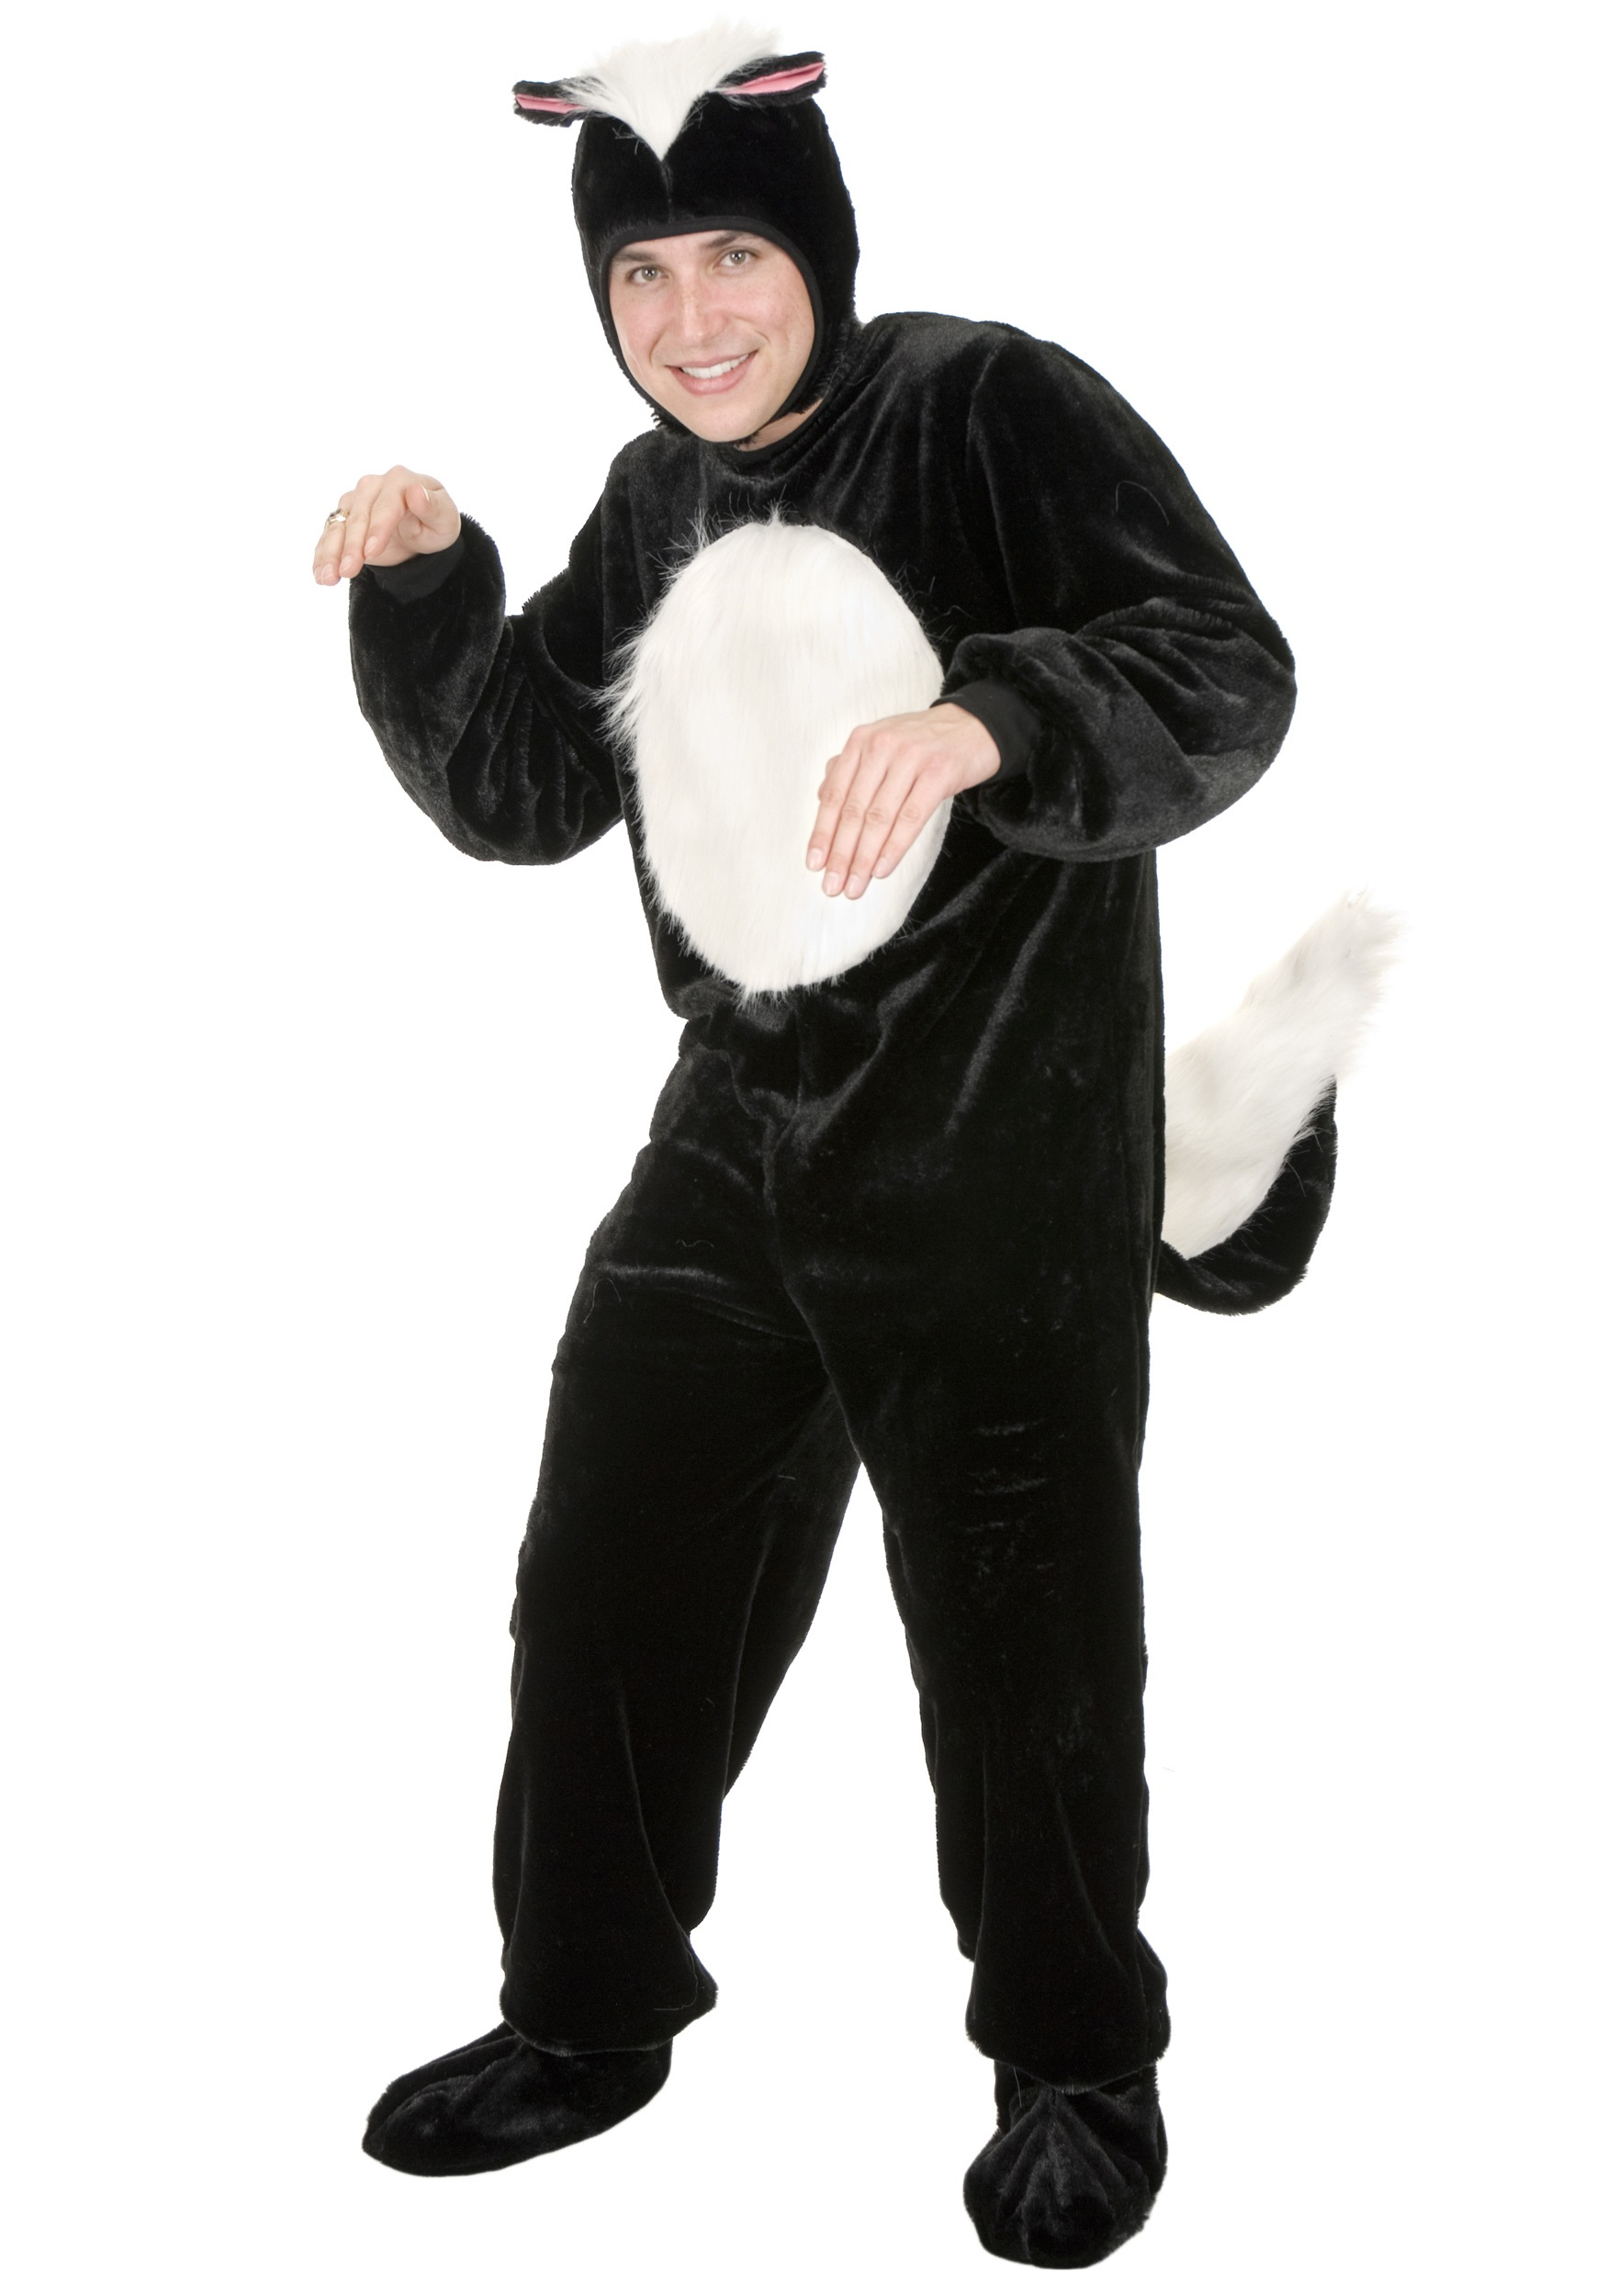 Adult Skunk Costume  sc 1 st  Halloween Costumes : mens costumes ideas - Germanpascual.Com